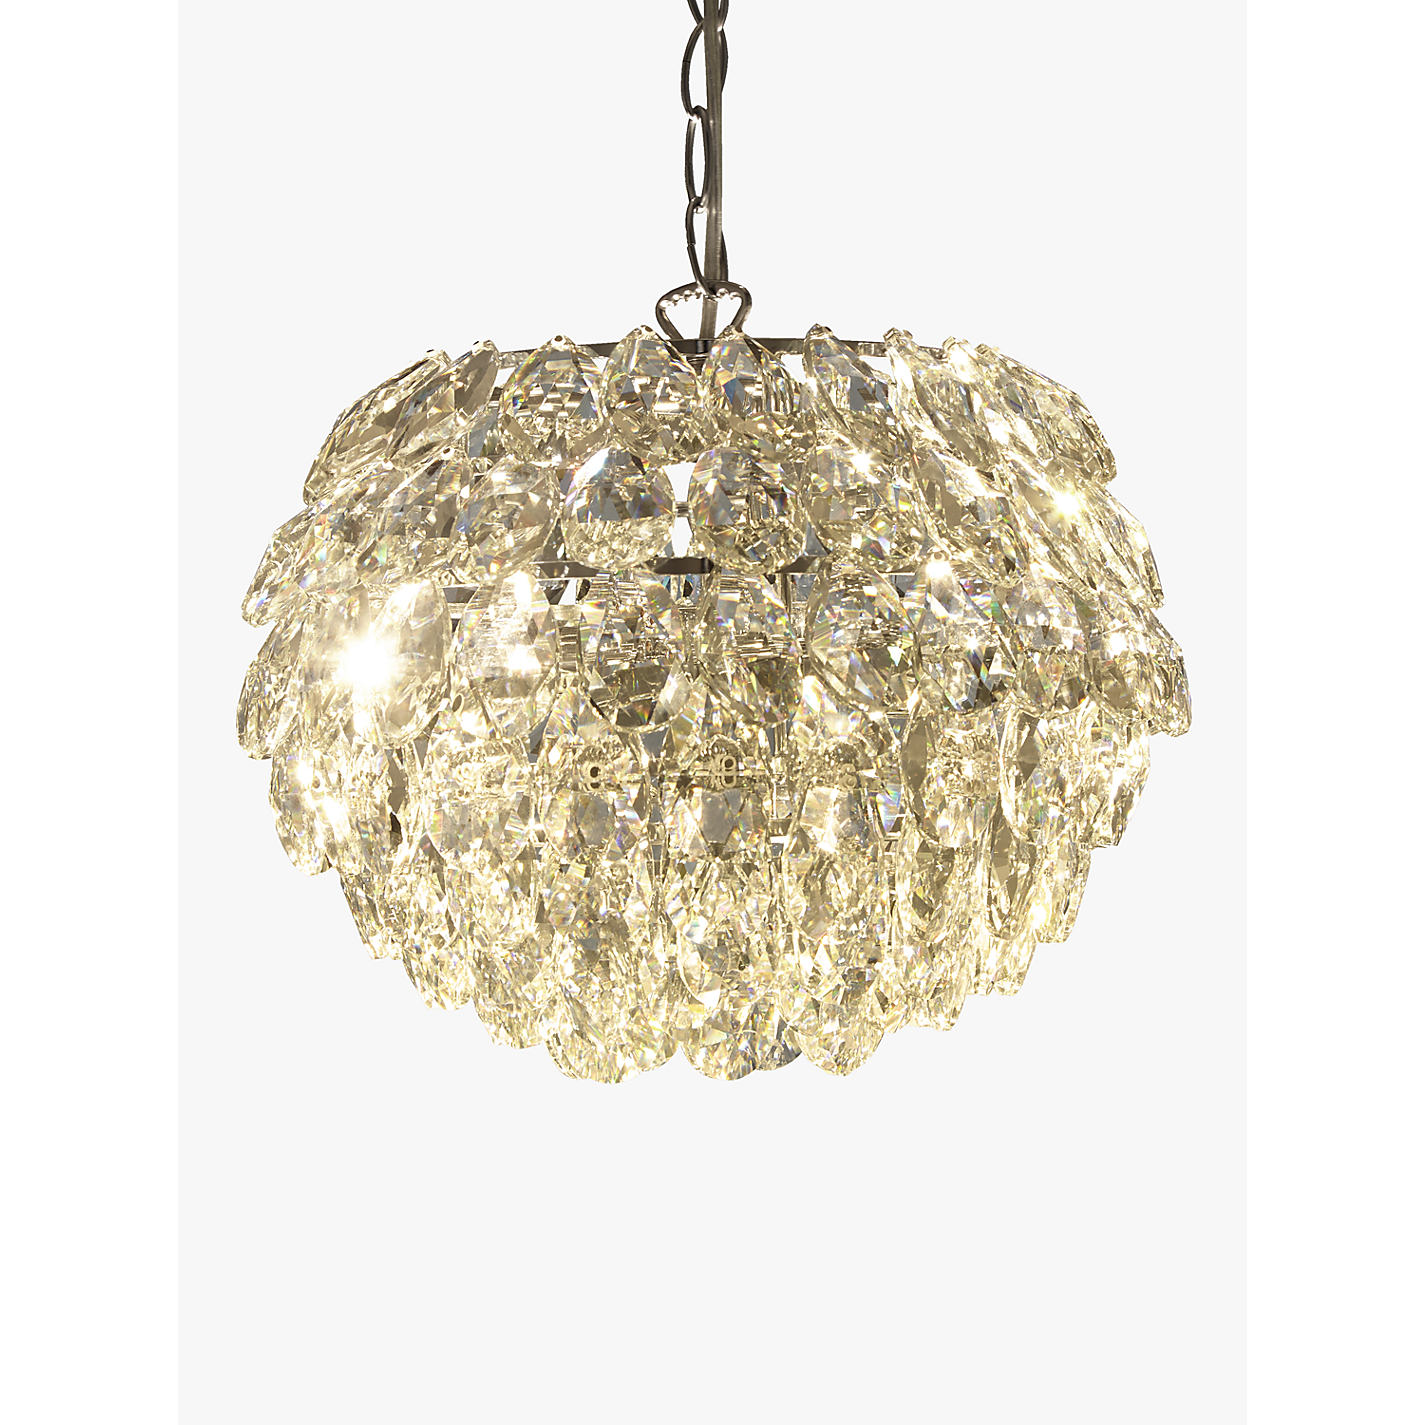 Buy john lewis alexa tear drop ceiling light pendant john lewis buy john lewis alexa tear drop ceiling light pendant online at johnlewis aloadofball Gallery